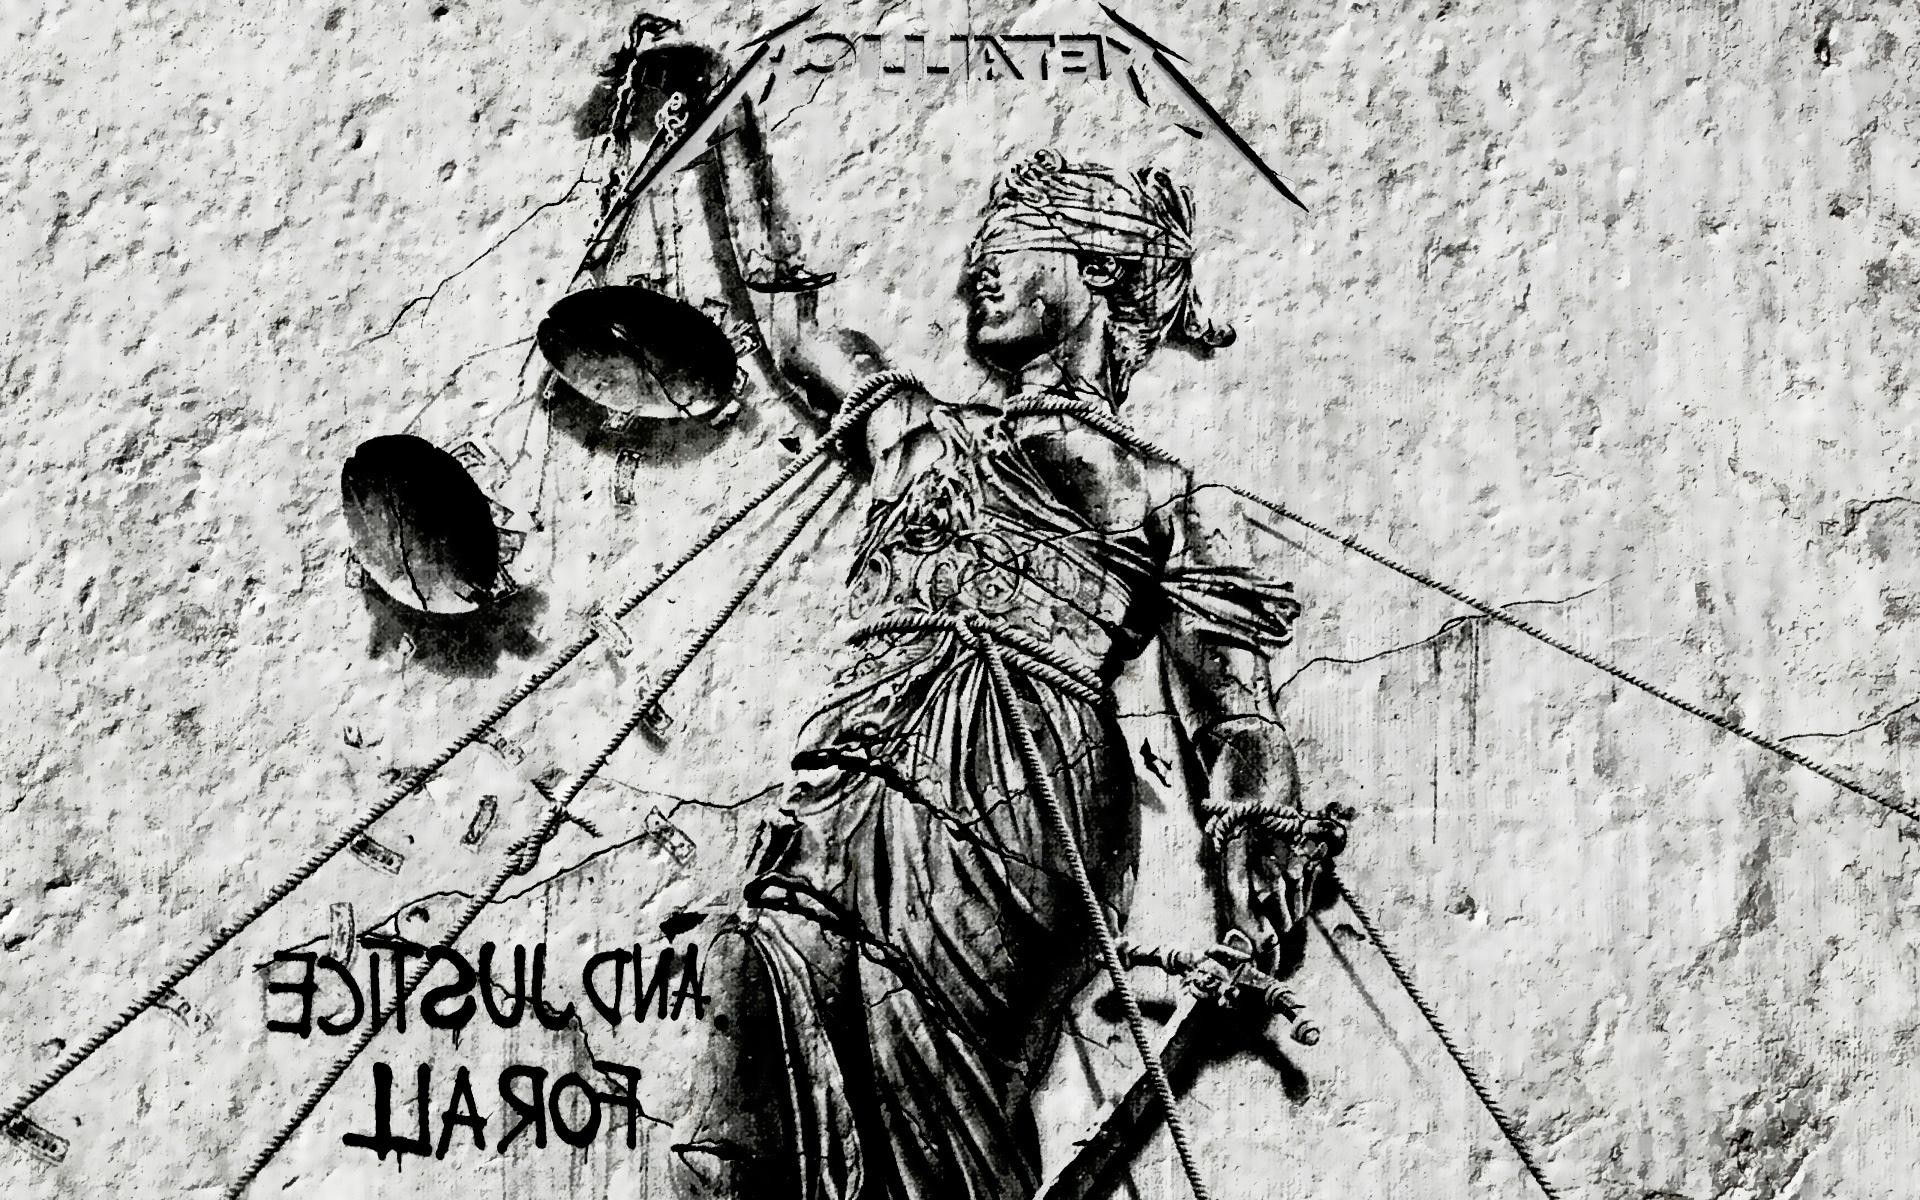 1920x1200 Metallica And Justice For All Images ...